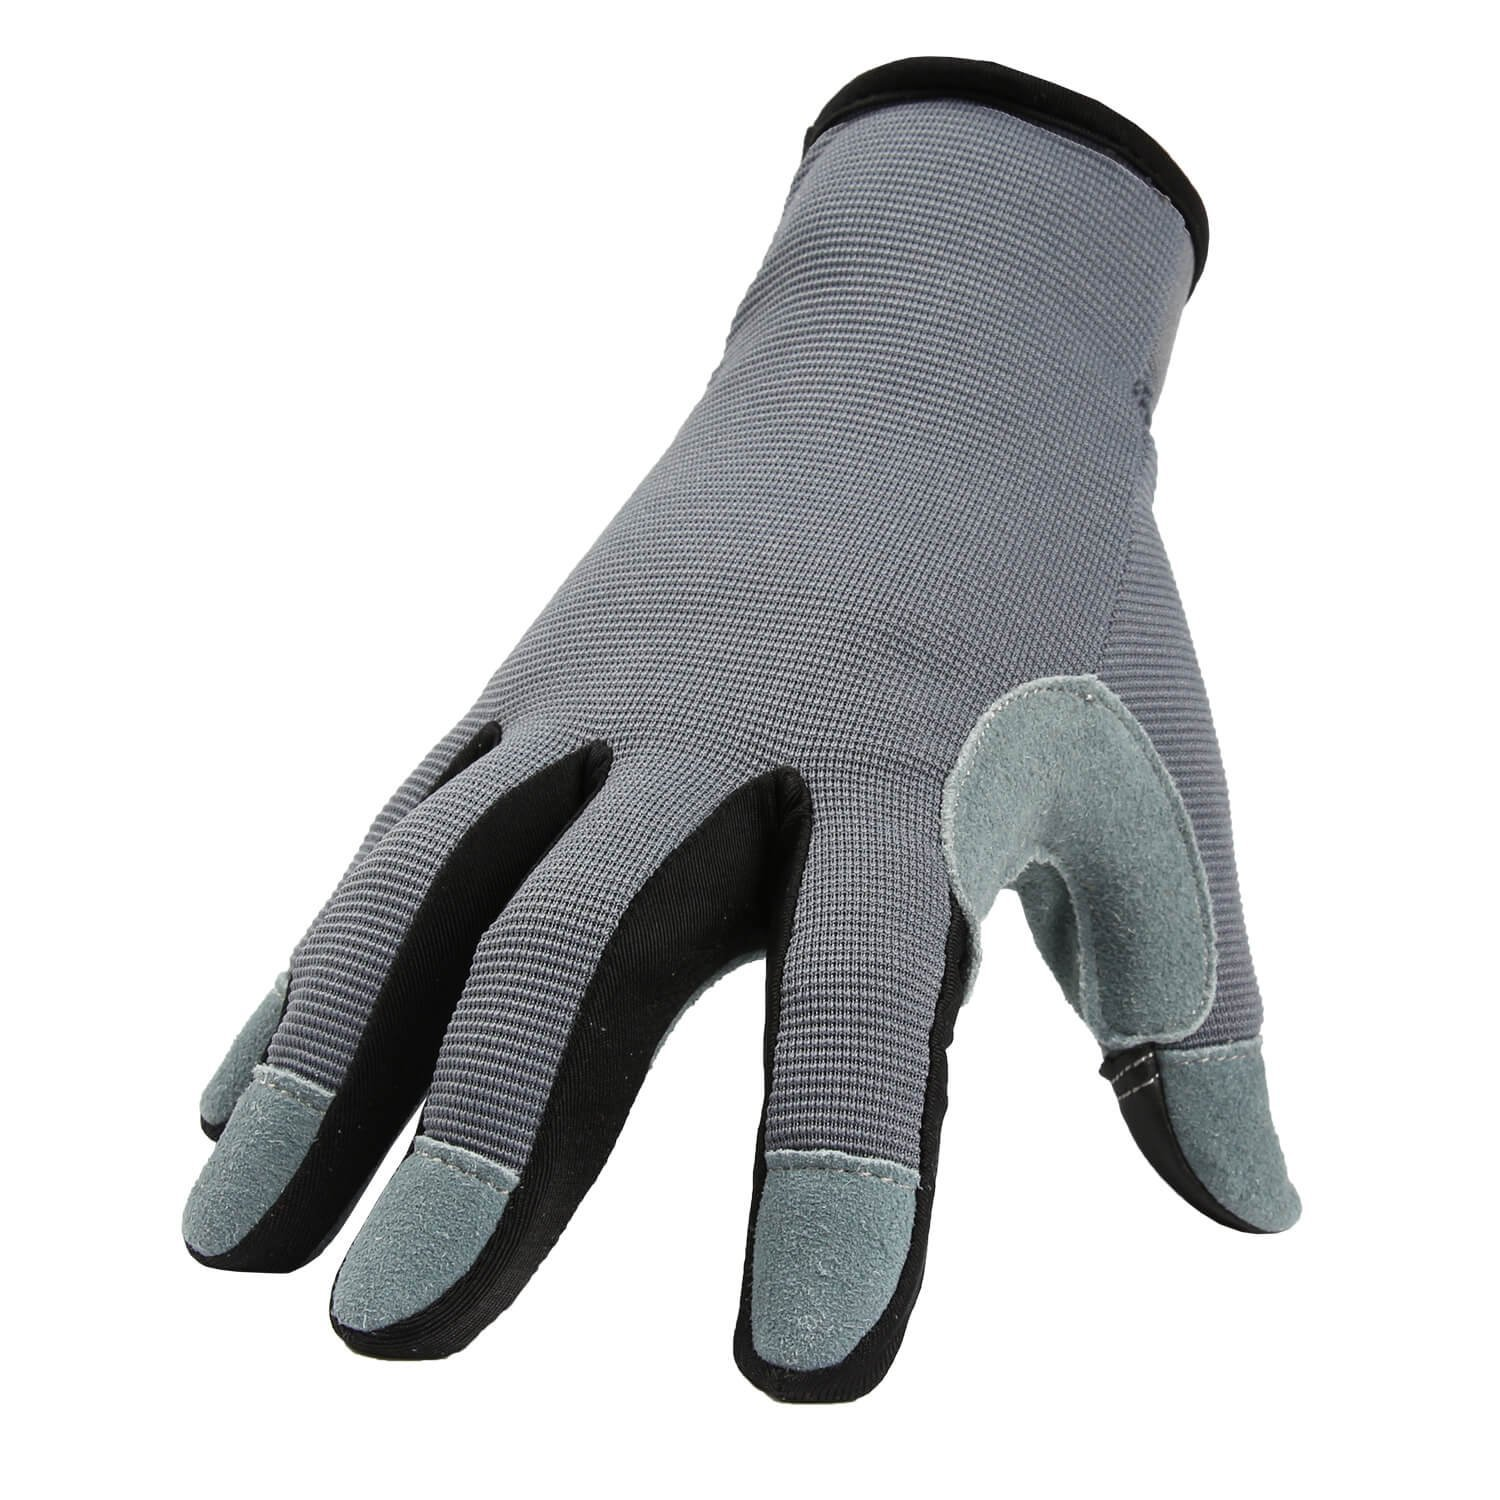 OZERO Mechanic Gloves with Genuine Deerskin Leather Palm and Sensitive Touch Screen Fingertips - Breathable and Snug-fit for Working, Gardening, DIY, Mechanics - Women and Men (Gray,Large)